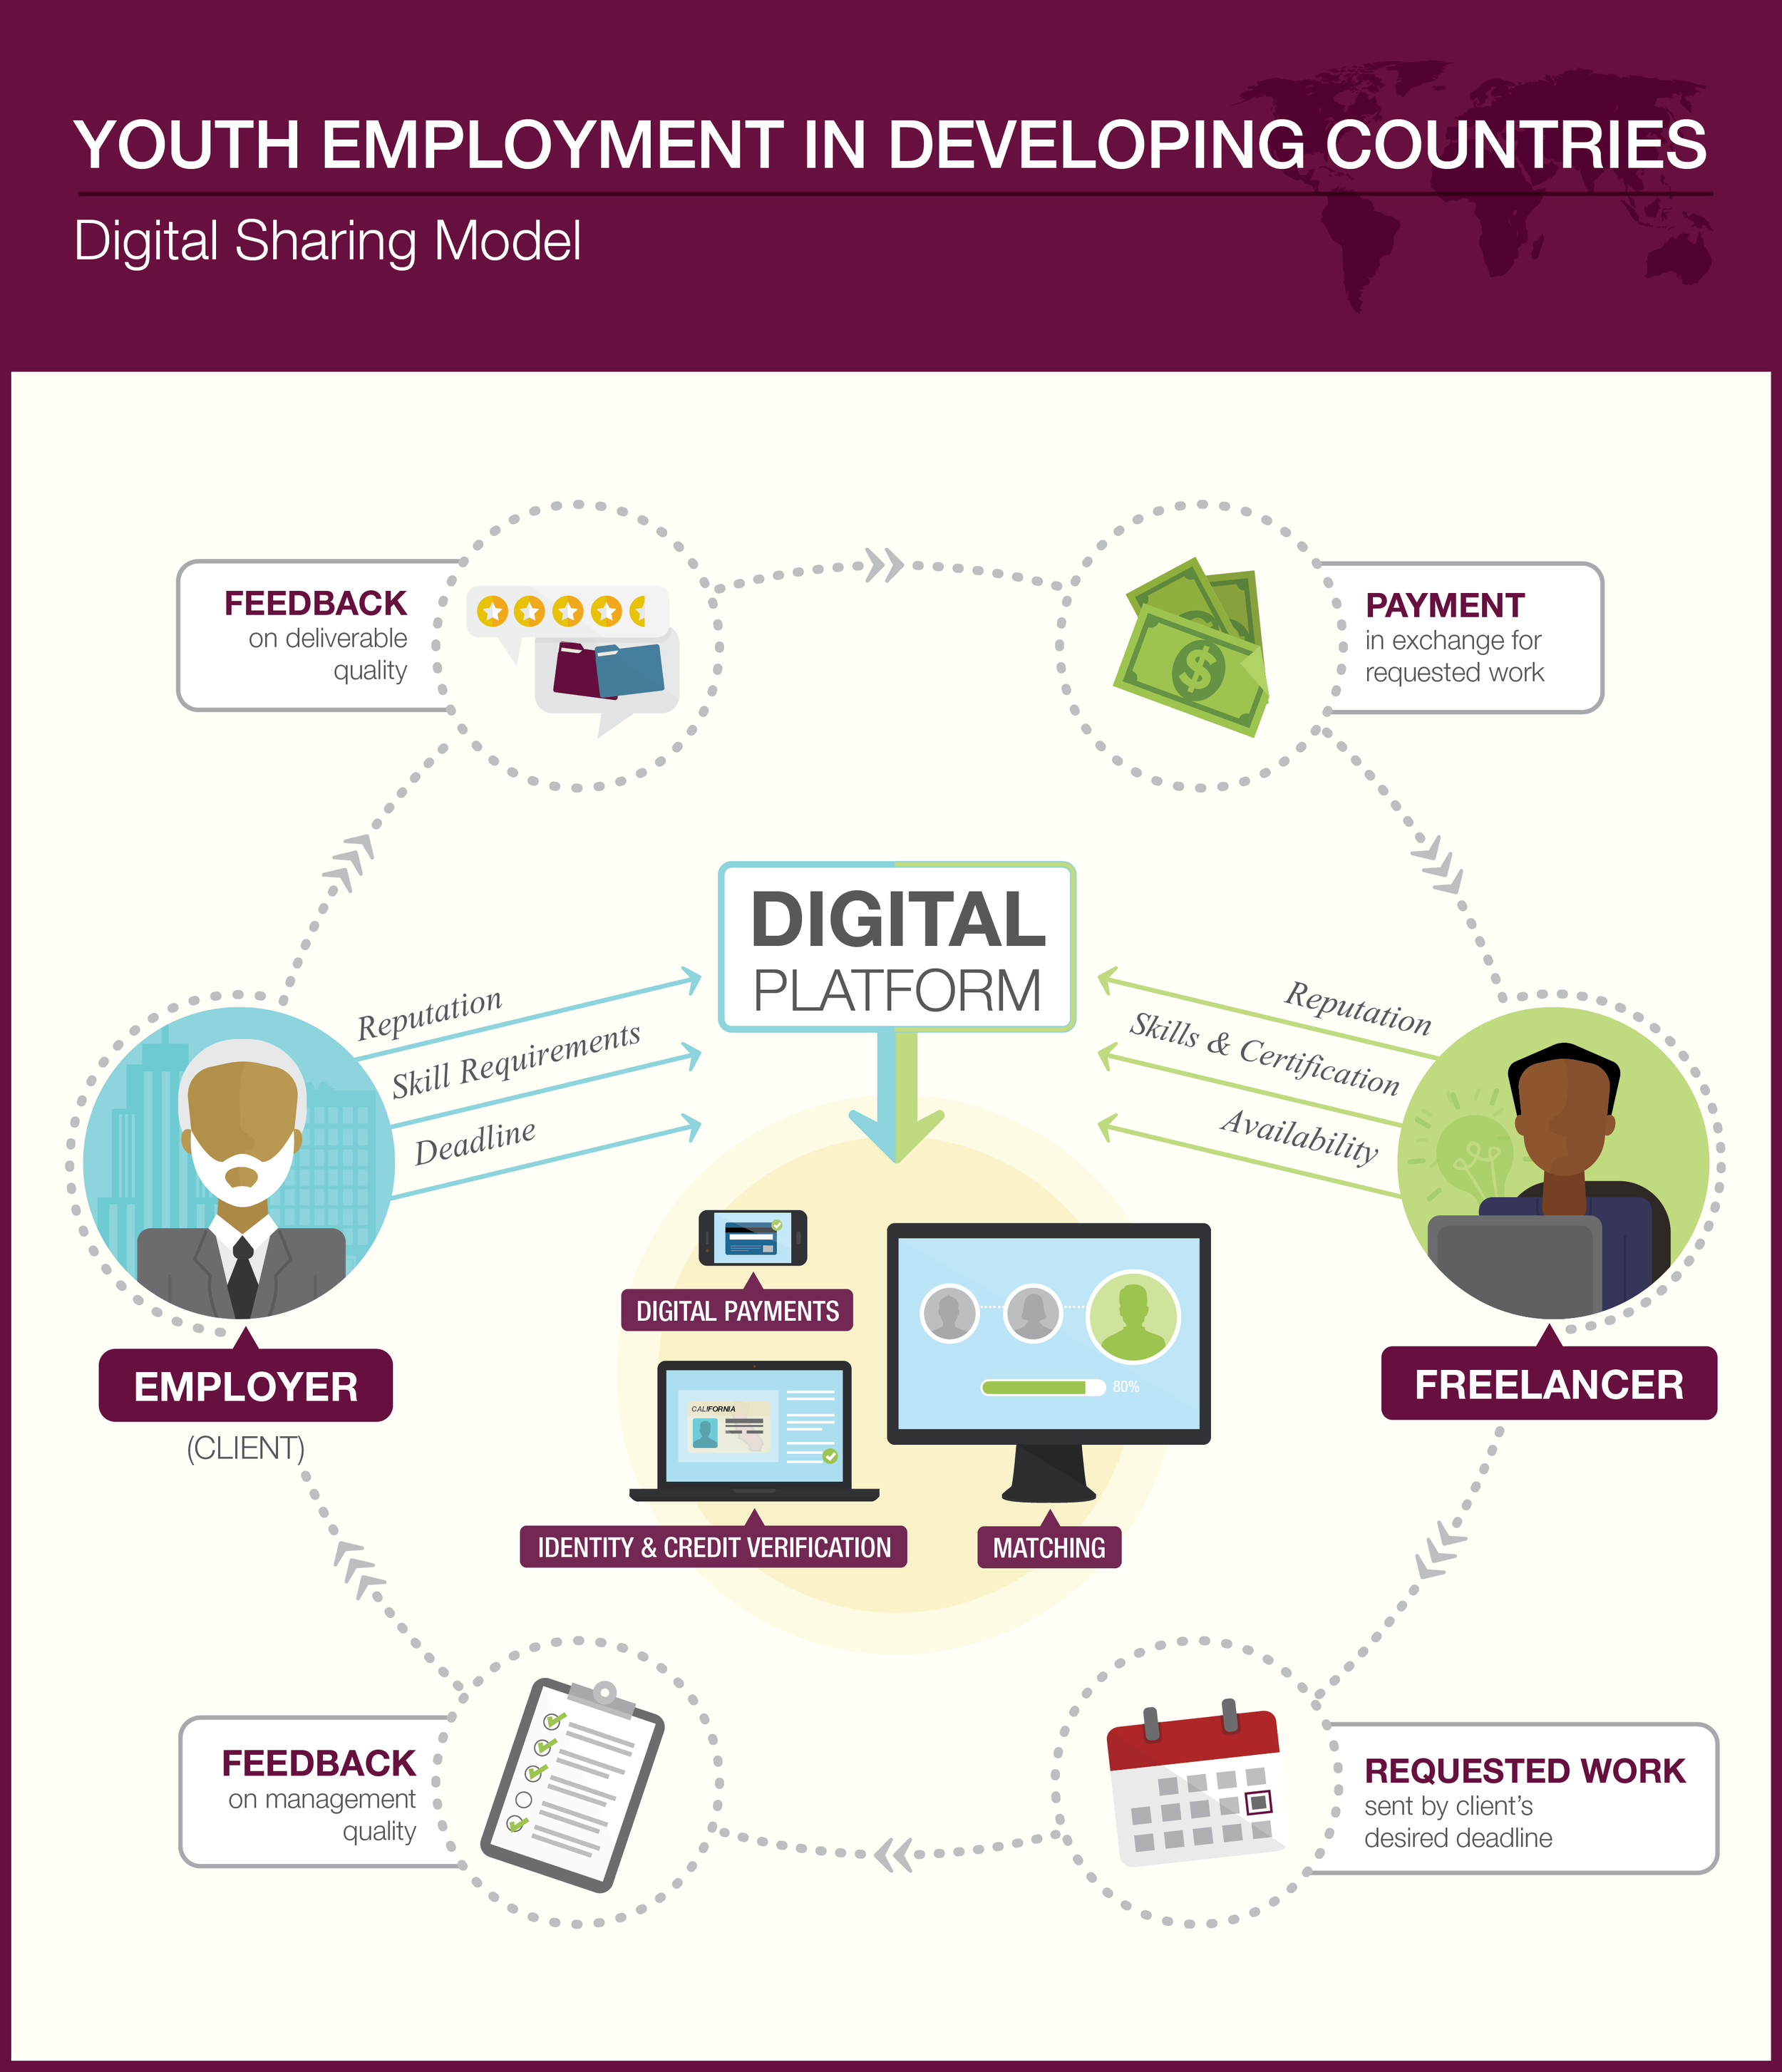 Digital Sharing Model: Youth Employment in Developing Countries